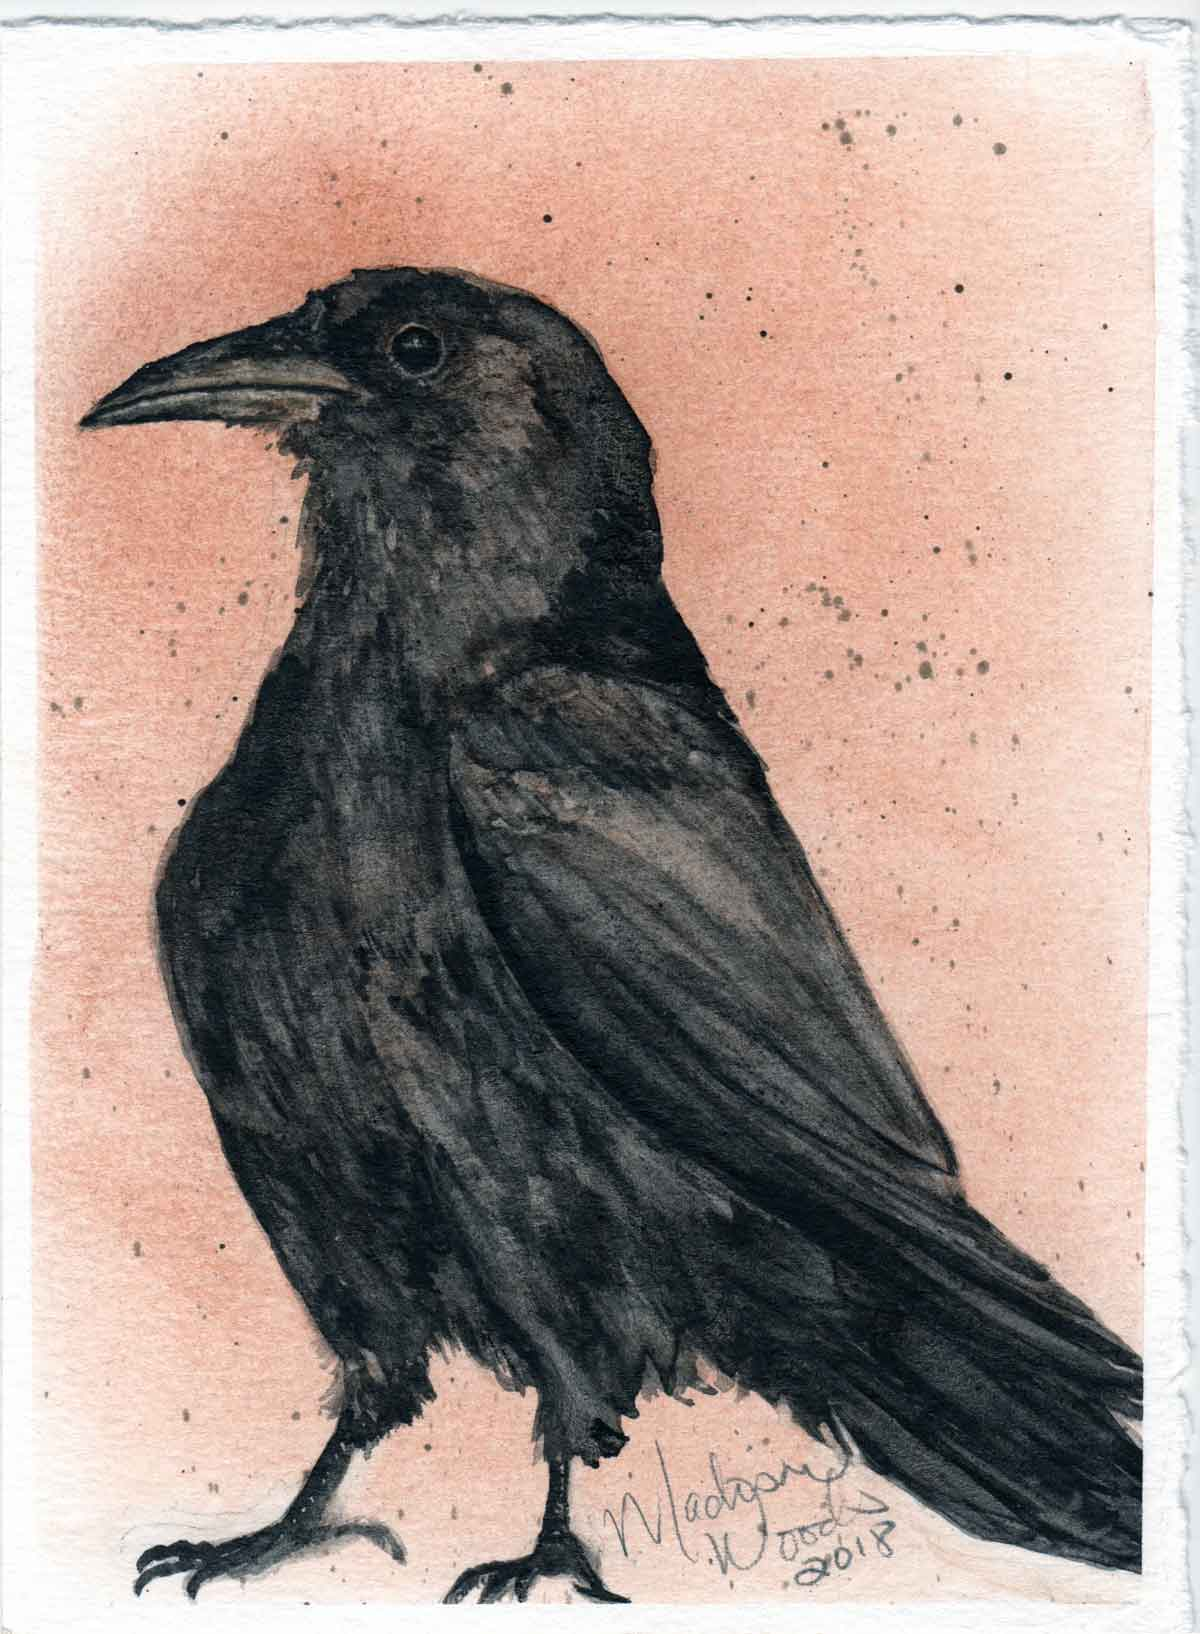 Kady's Crow, a painting of a crow by Madison Woods